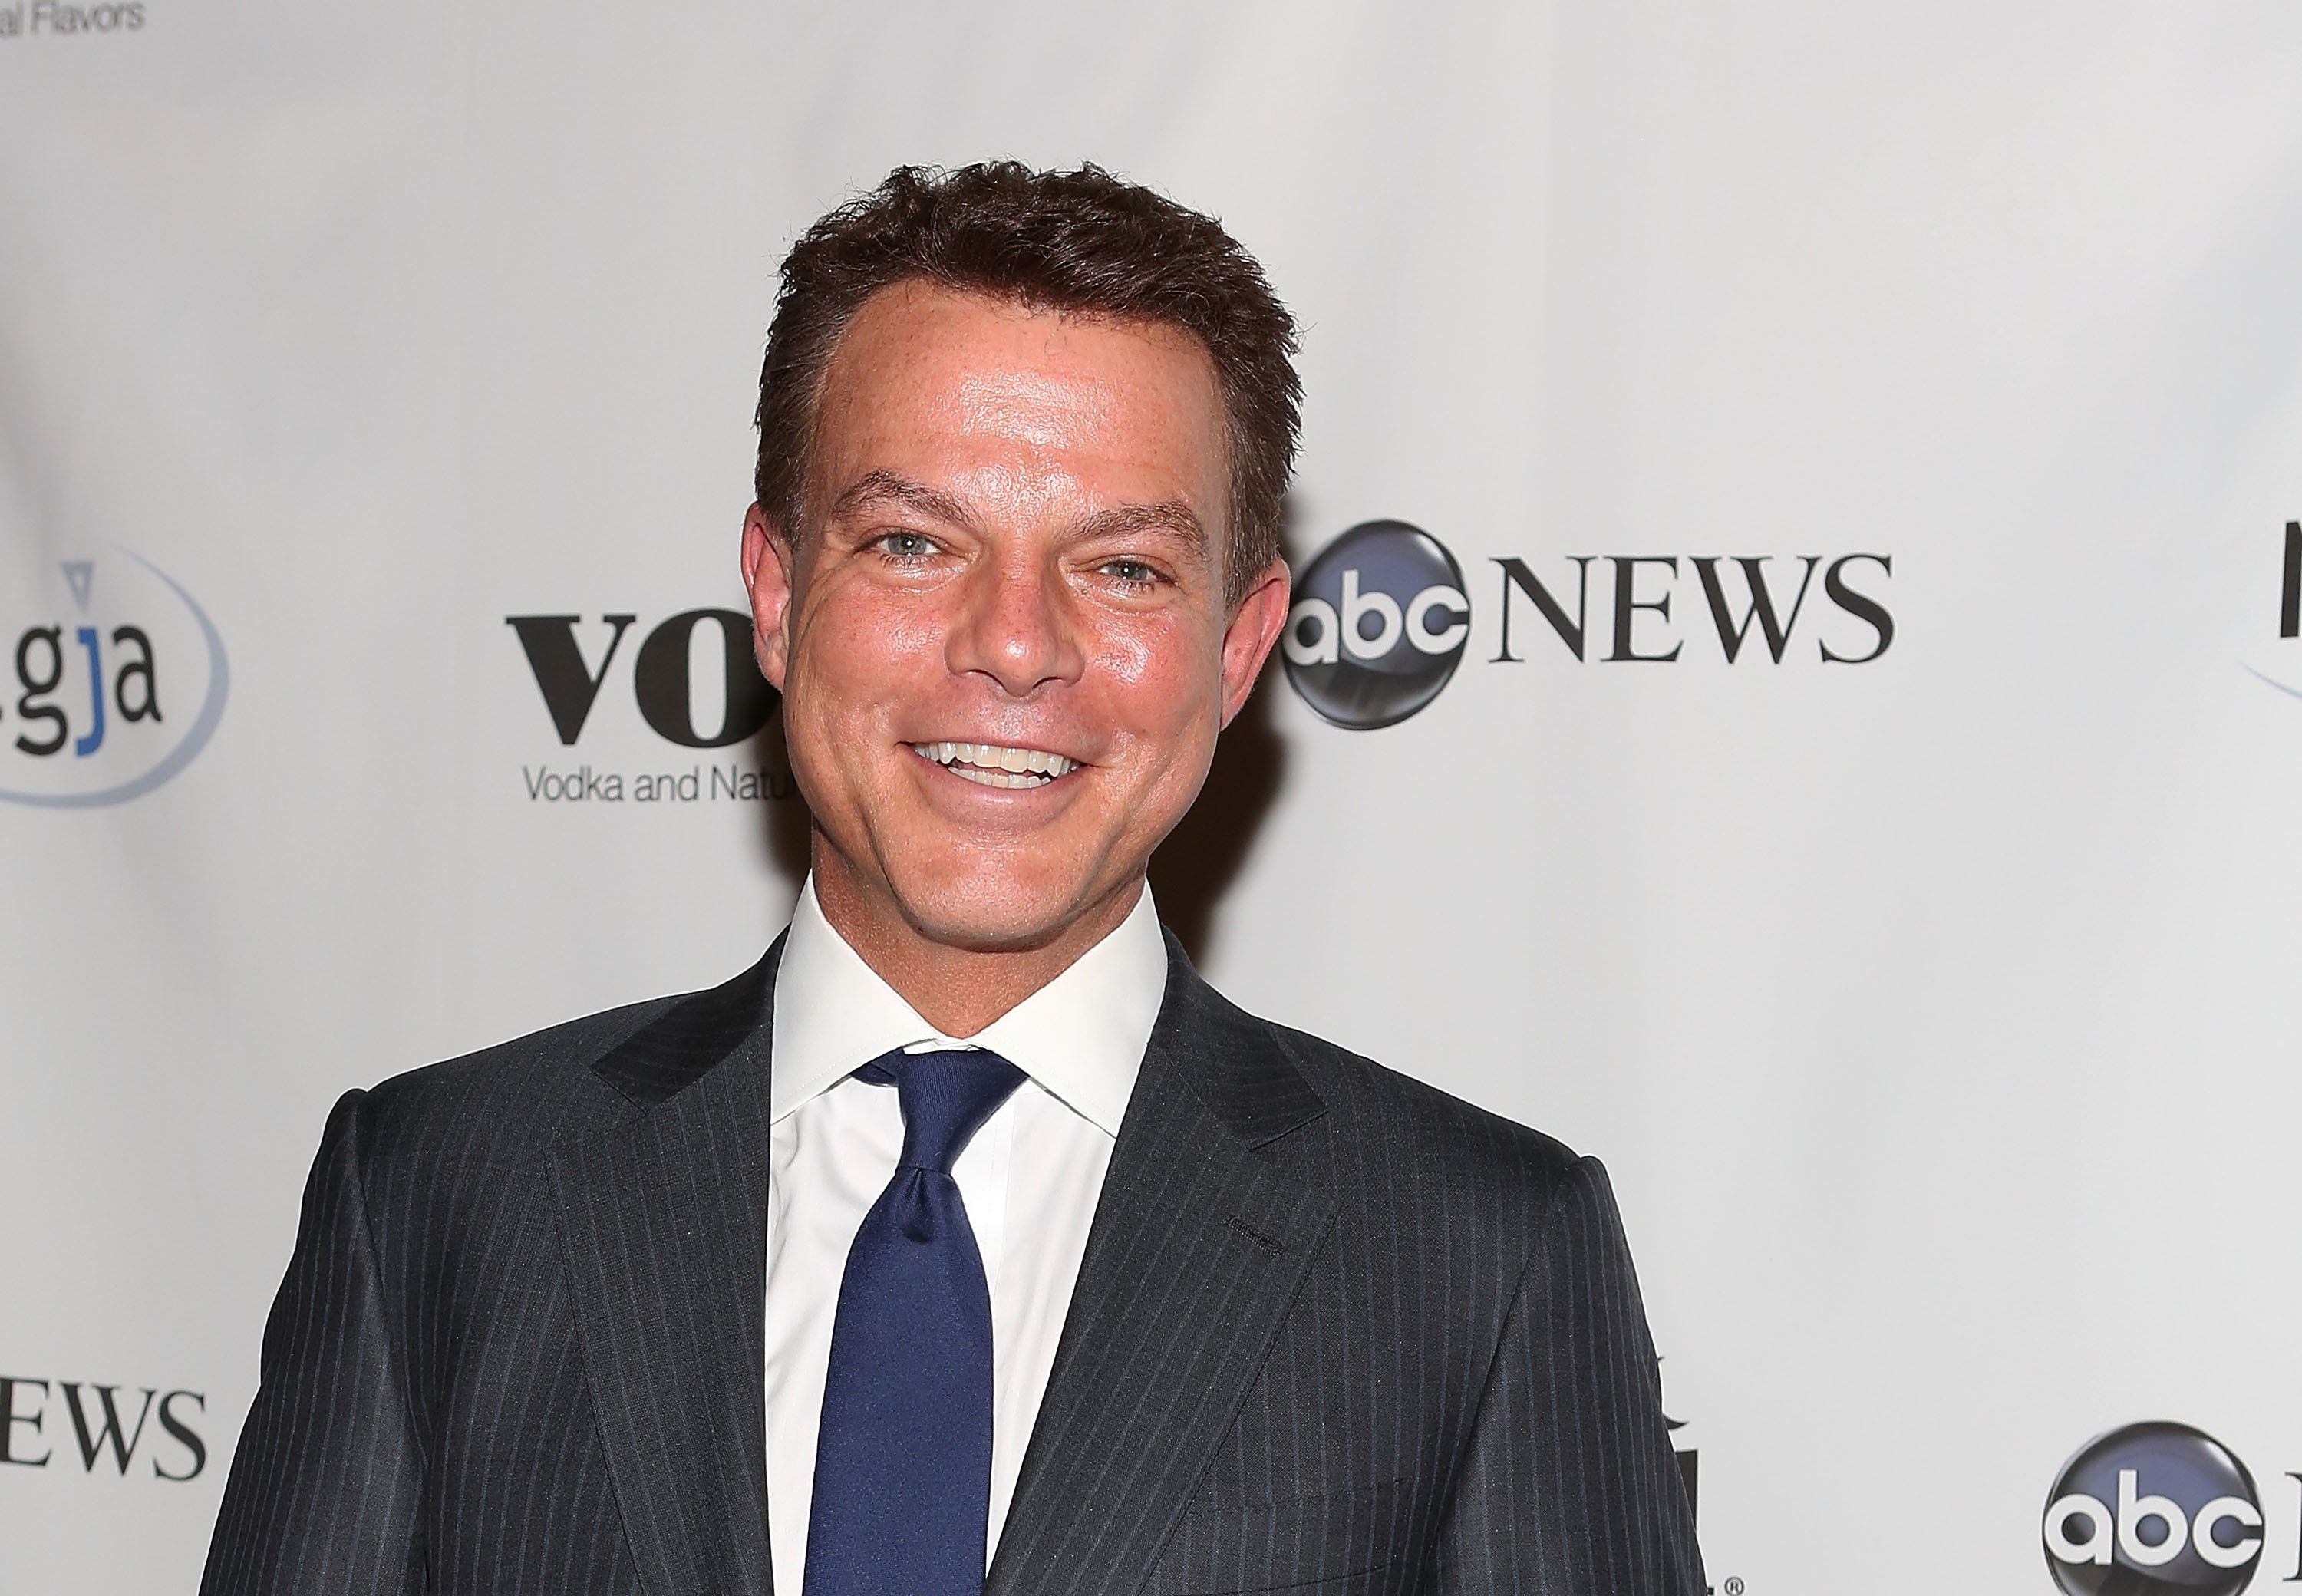 NEW YORK, NY - MARCH 20:  Shepard Smith attends the 19th Annual National Lesbian And Gay Journalists Association New York Benefit at The Prince George Ballroom on March 20, 2014 in New York City.  (Photo by Robin Marchant/Getty Images)